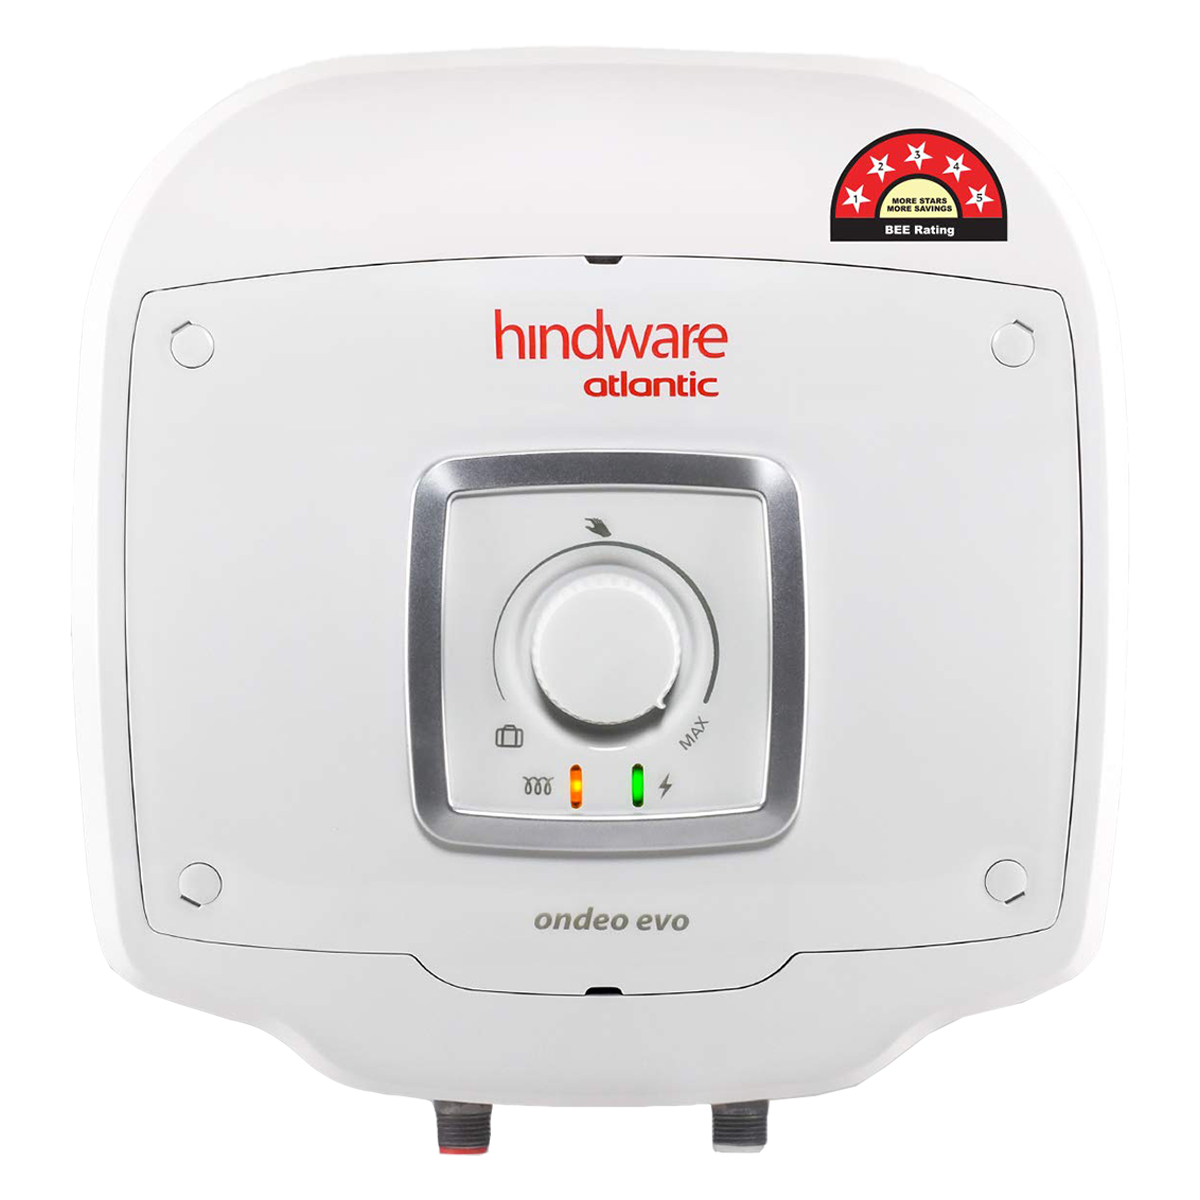 Hindware Atlantic Ondeo Evo 25 Litres 5 Star Rating Storage Water Heater (240 Watts, SWH 25A-2 M-2, White)_1